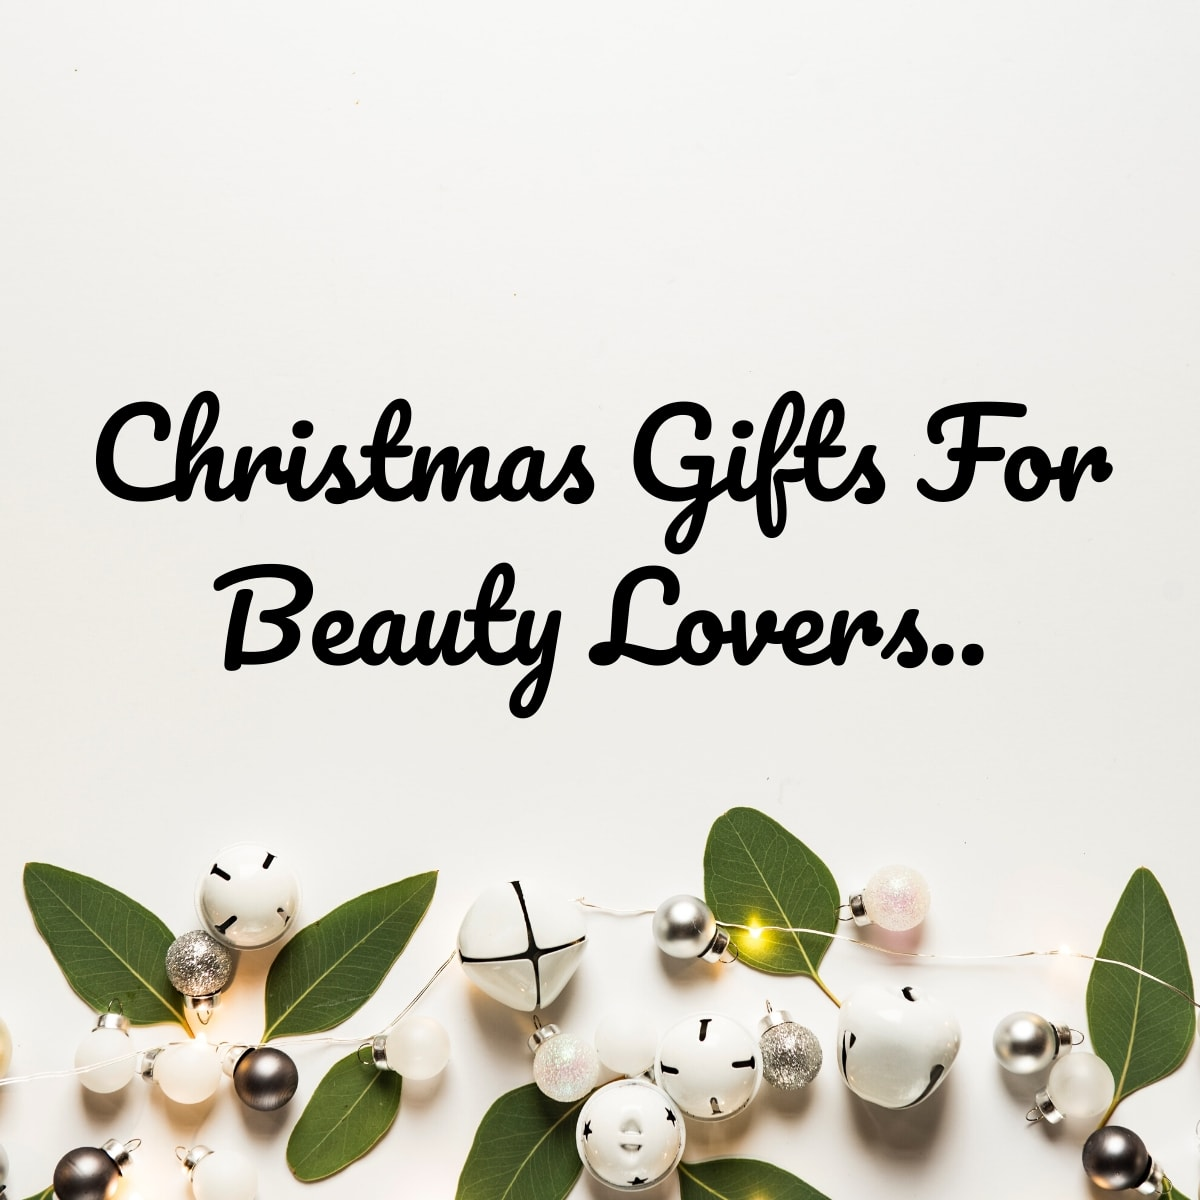 Christmas Gifts For Beauty Lovers 2020